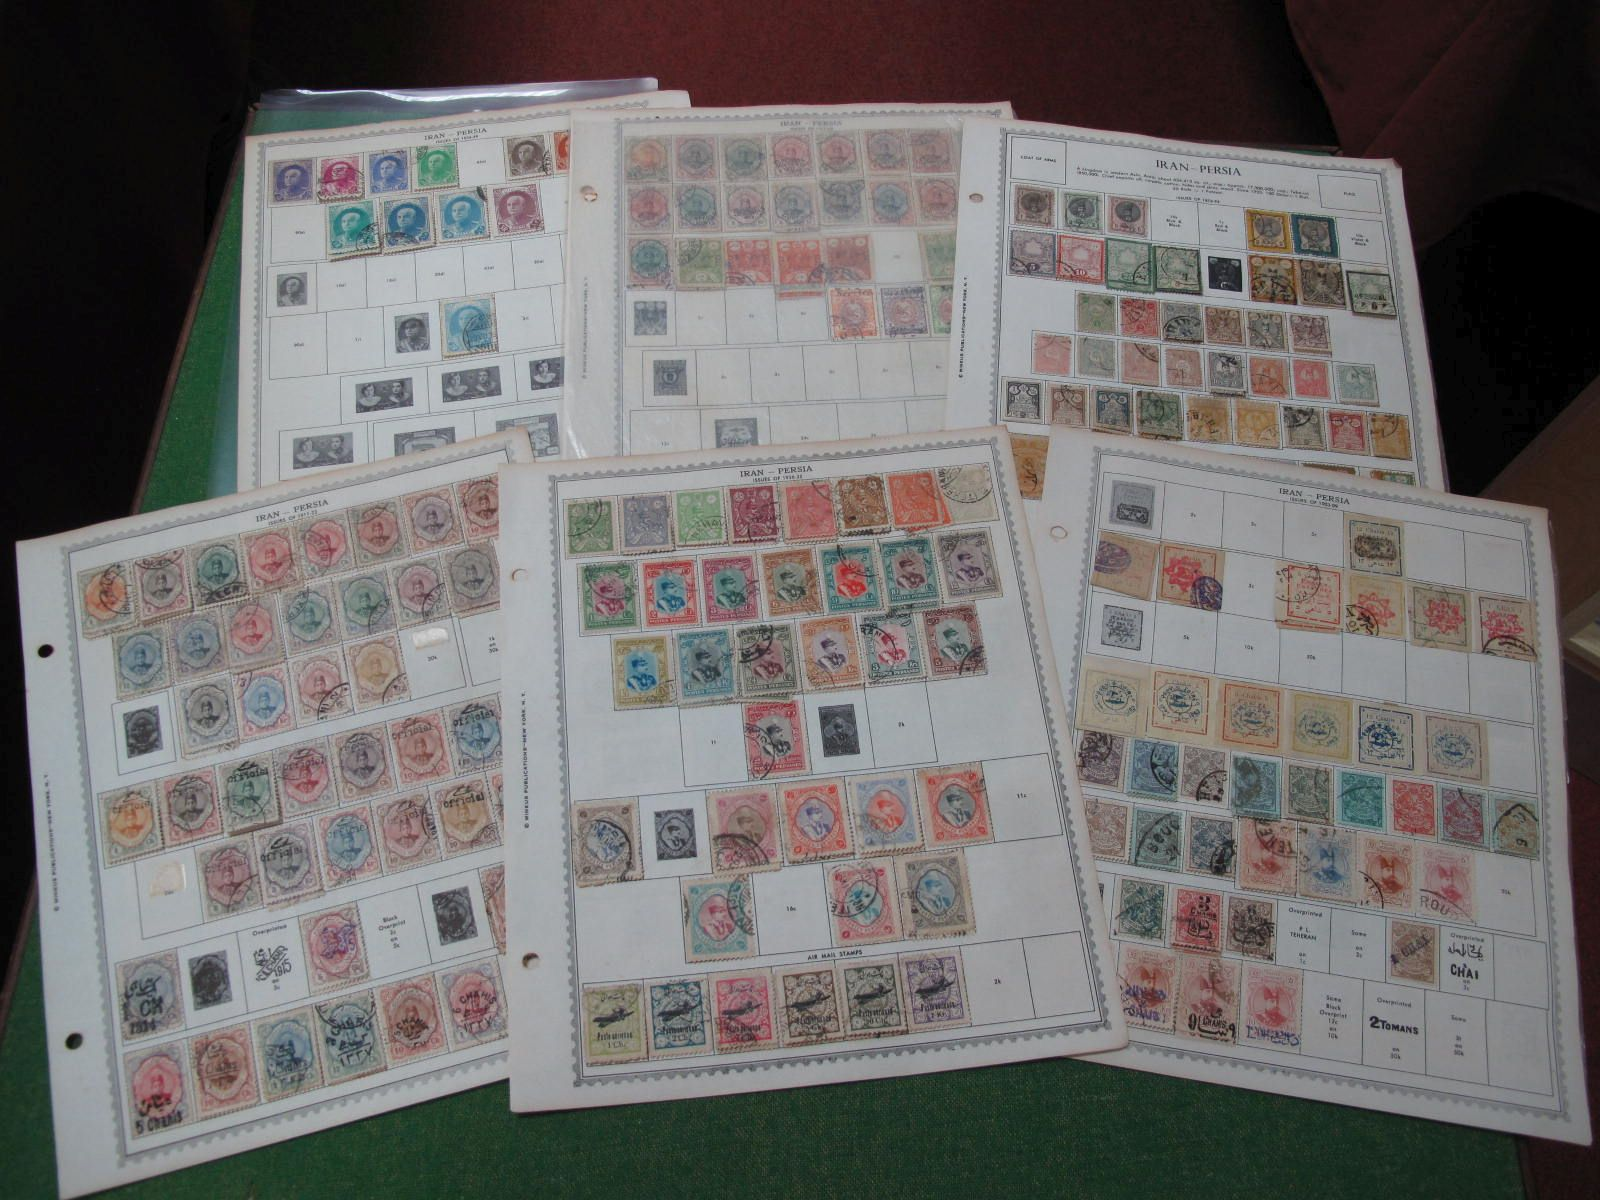 Iran Collection of Mint and Used Stamps, from earlier material to around 1935, good material for